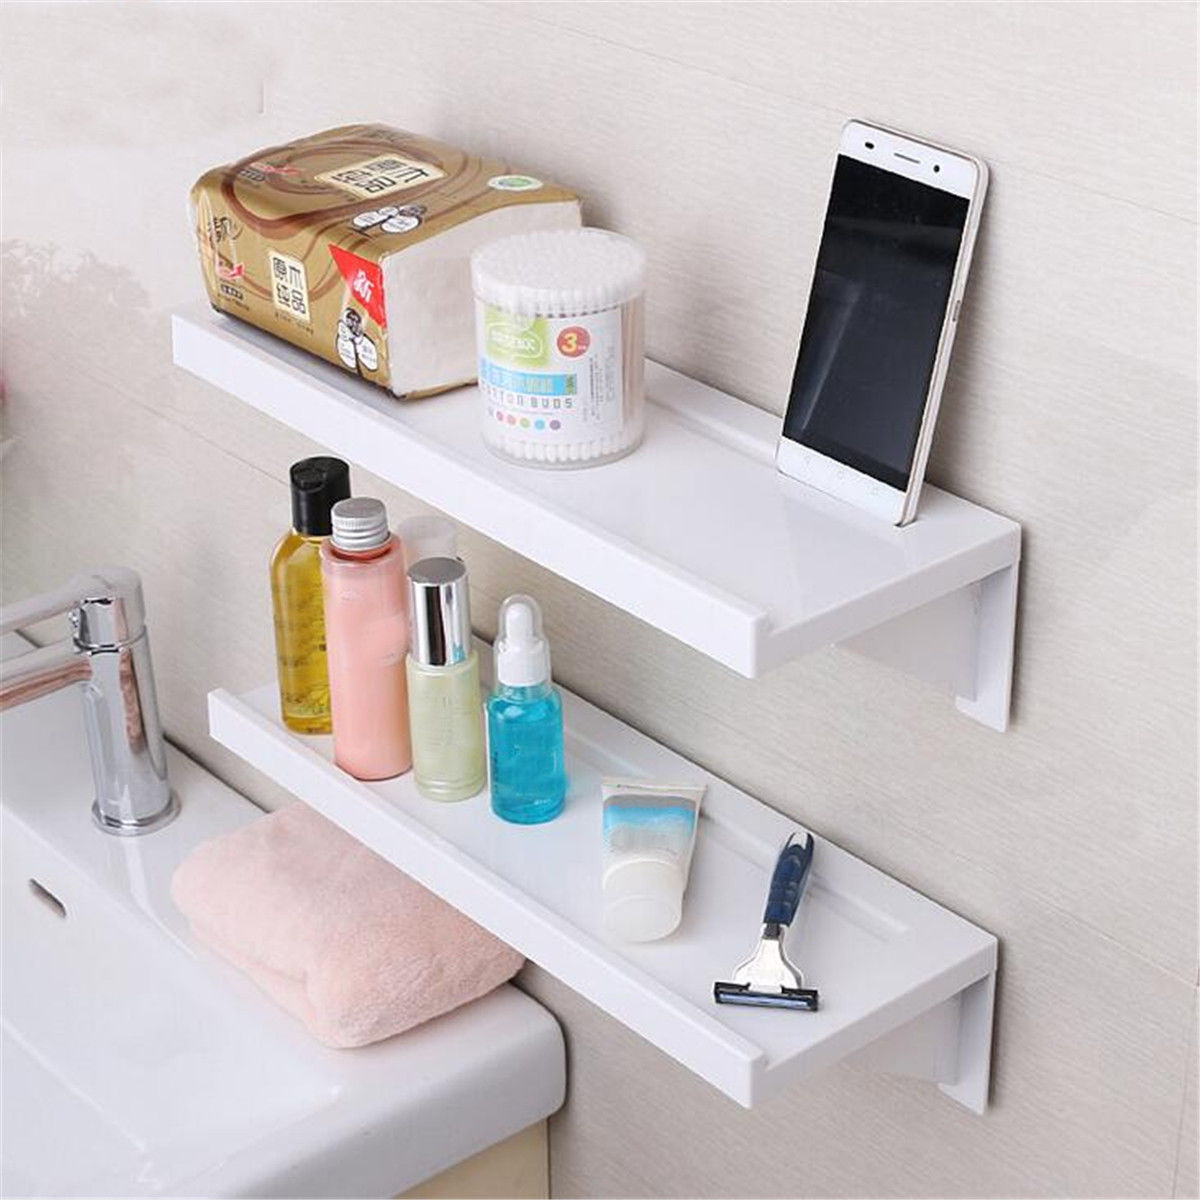 Bathroom Shelf Holder Shower Storage Rack Caddy Shampoo Organiser ...